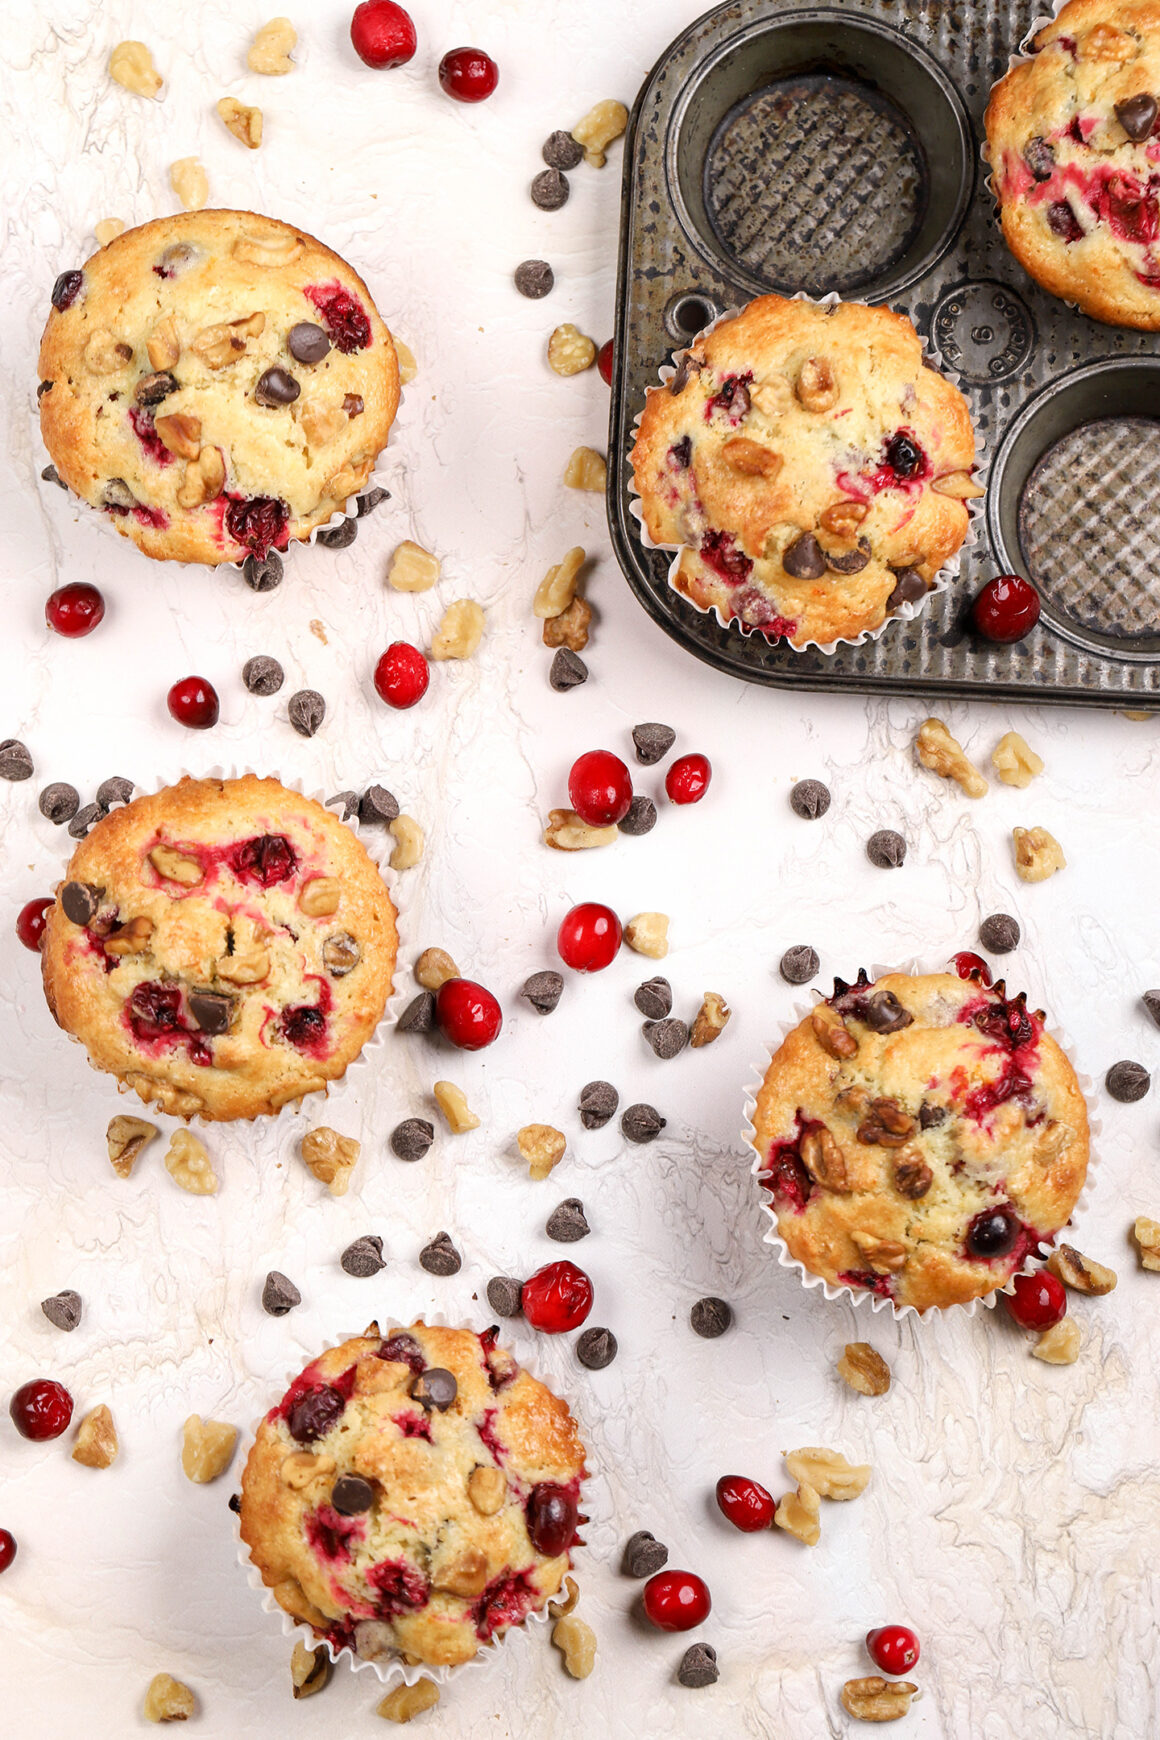 jumbo orange muffins with cranberries and walnuts